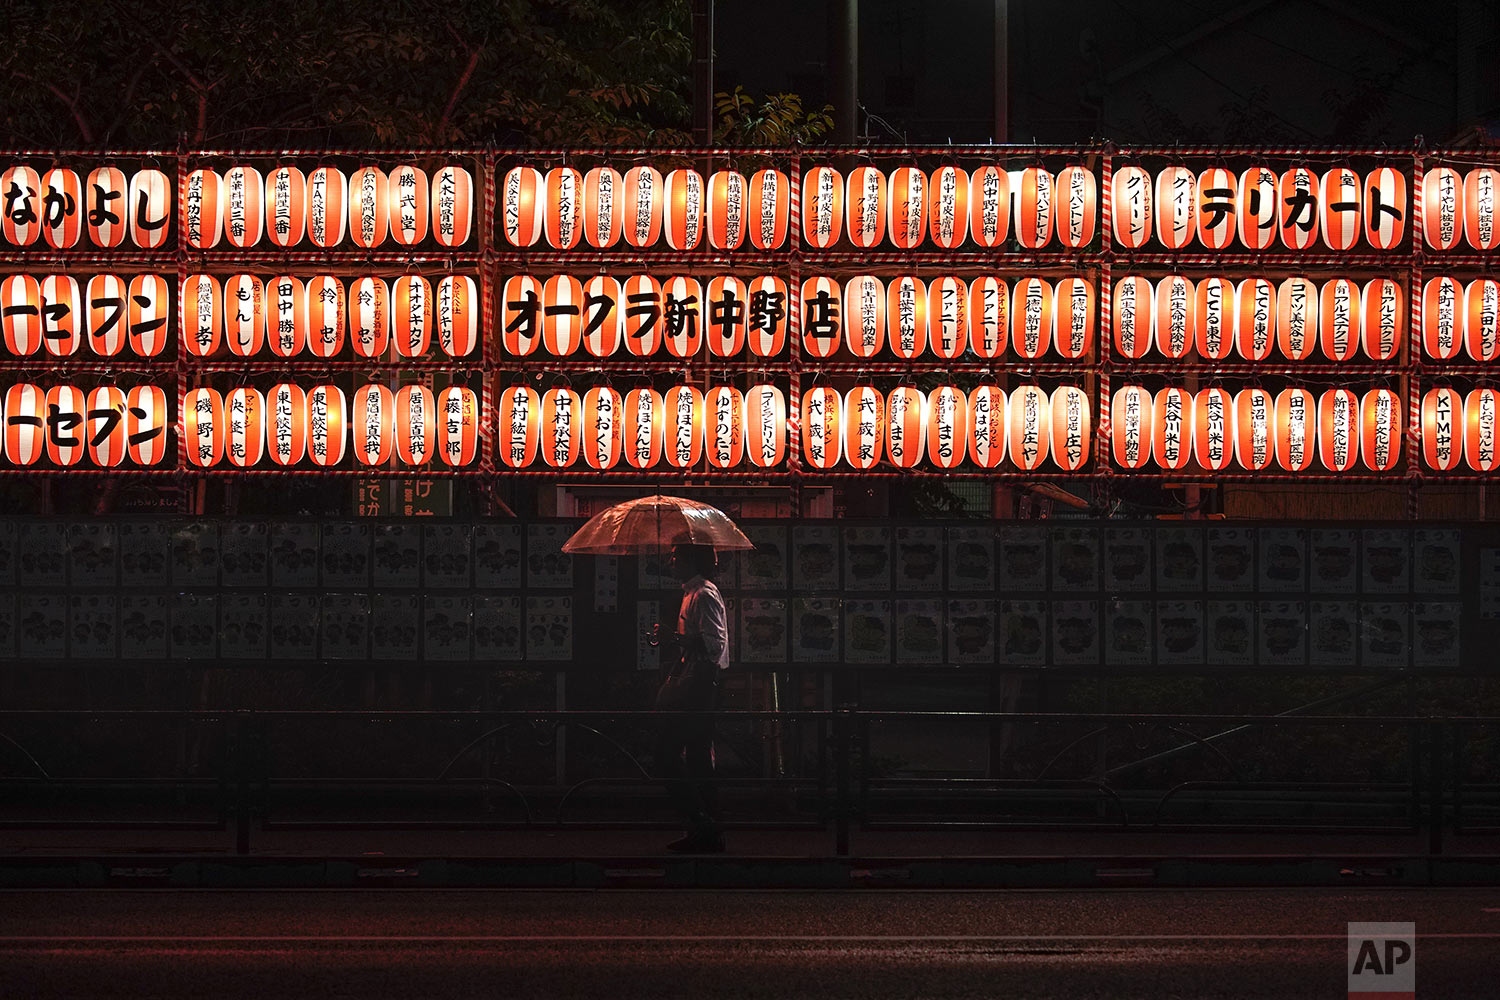 A man walks with an umbrella past lanterns in the Nakano district of Tokyo, Wednesday, Sept. 11, 2019. (AP Photo/Jae C. Hong)